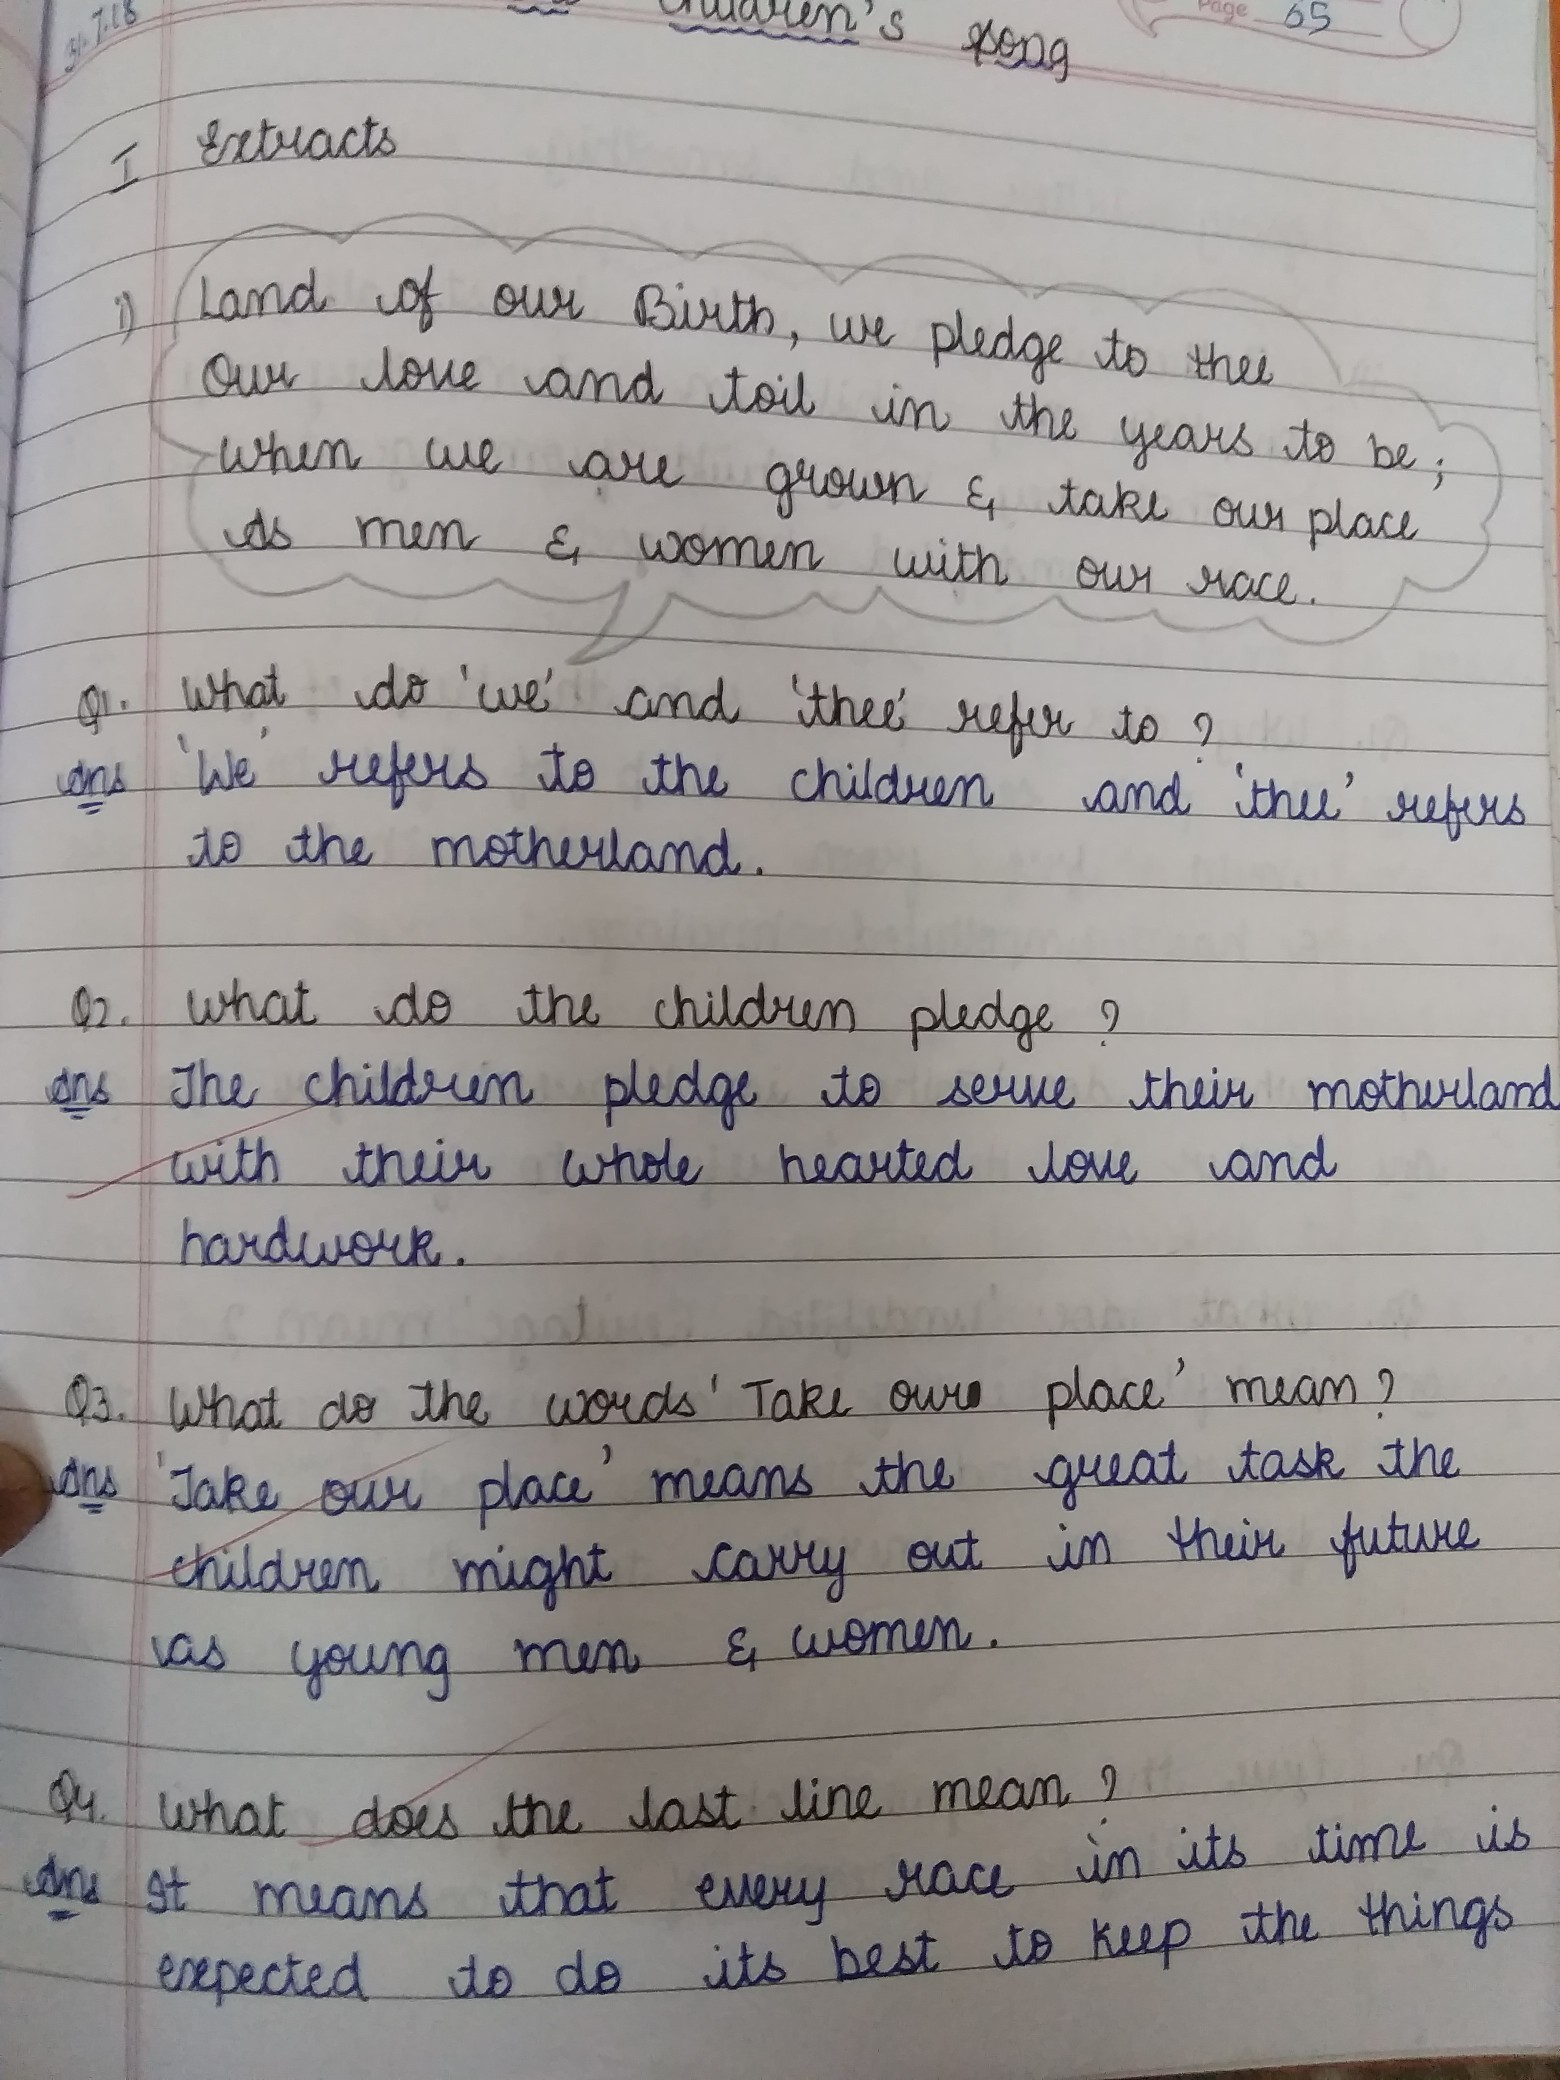 extracts of chapter 7 the children song of class 8 DAV